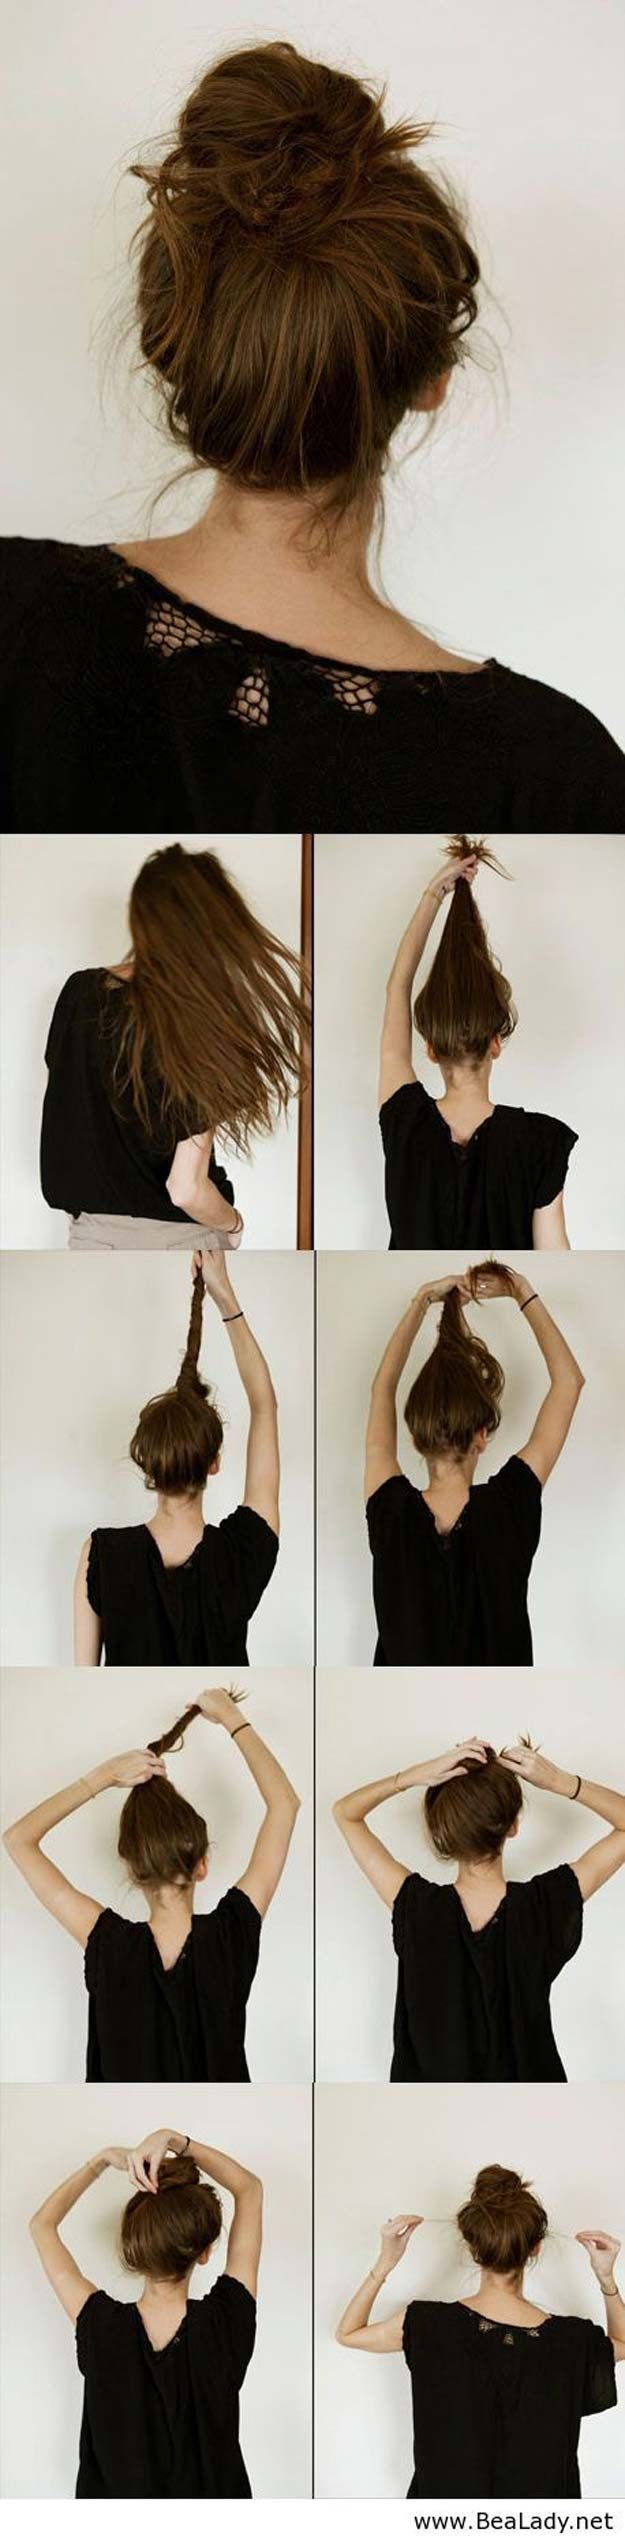 Festival Hair Tutorials - Super Easy Knotted Bun Updo For Concerts - Short Quick...